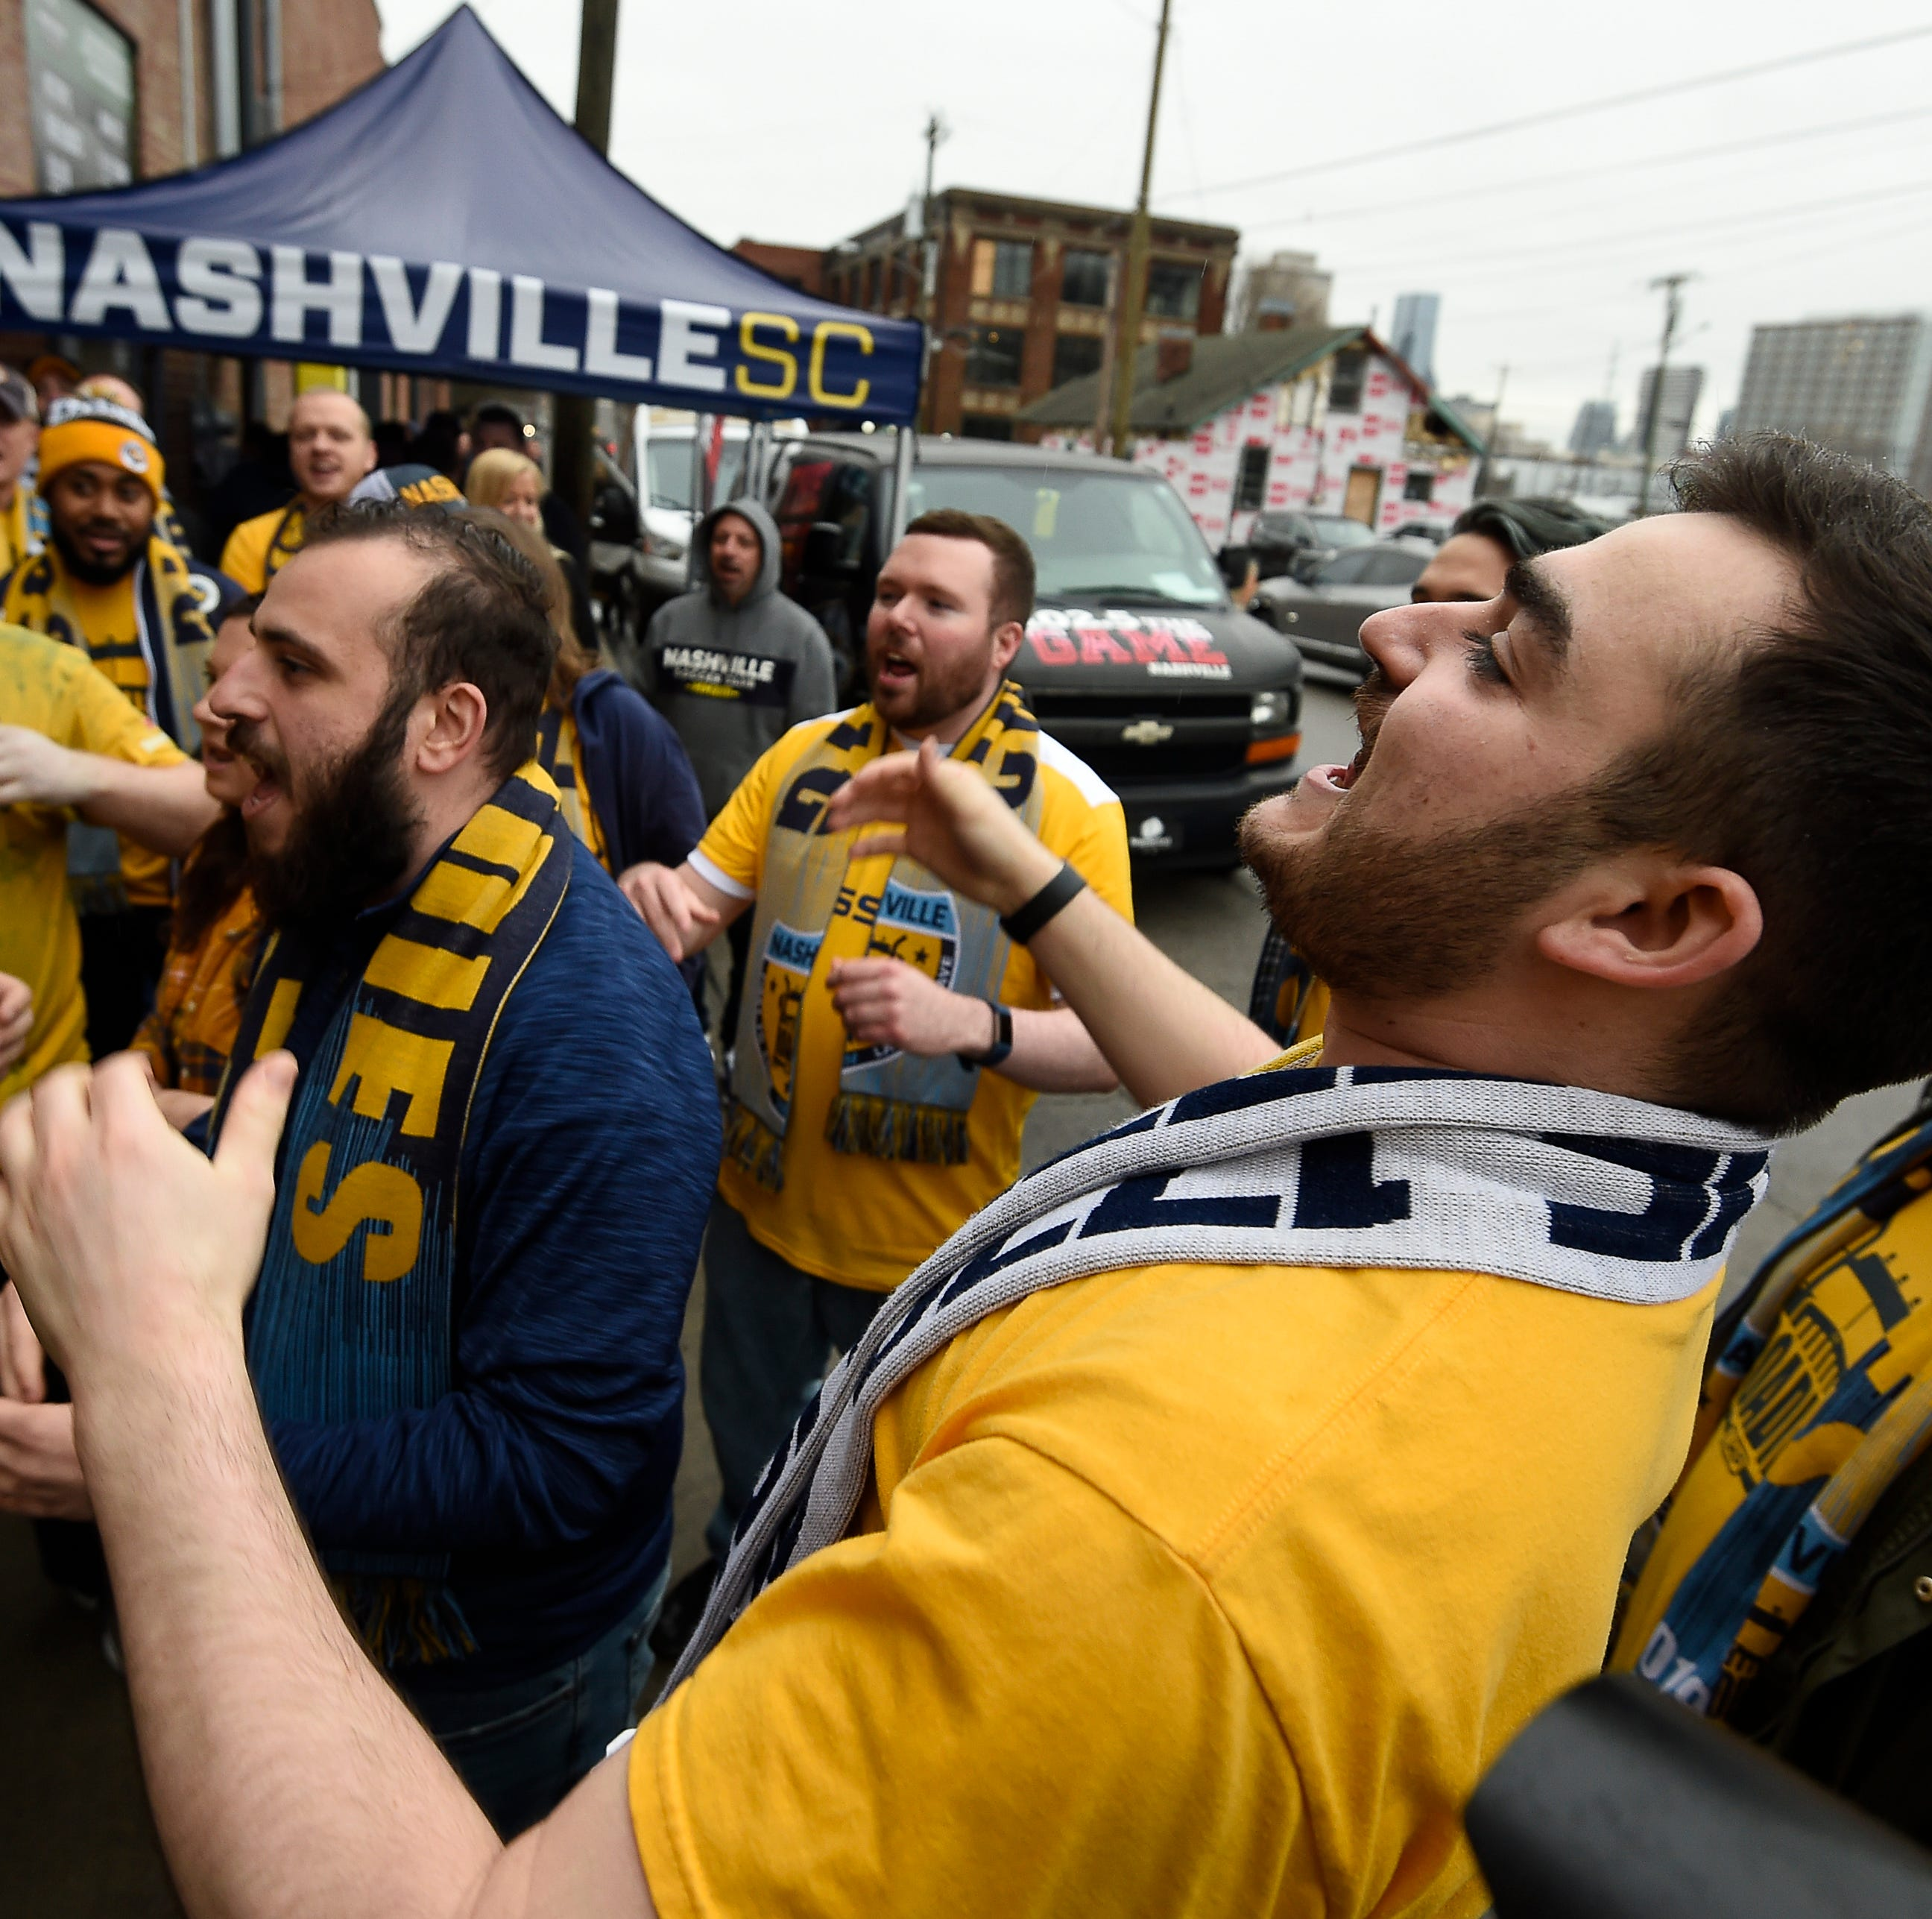 Nashville SC has our attention, but can they own our hearts in MLS?